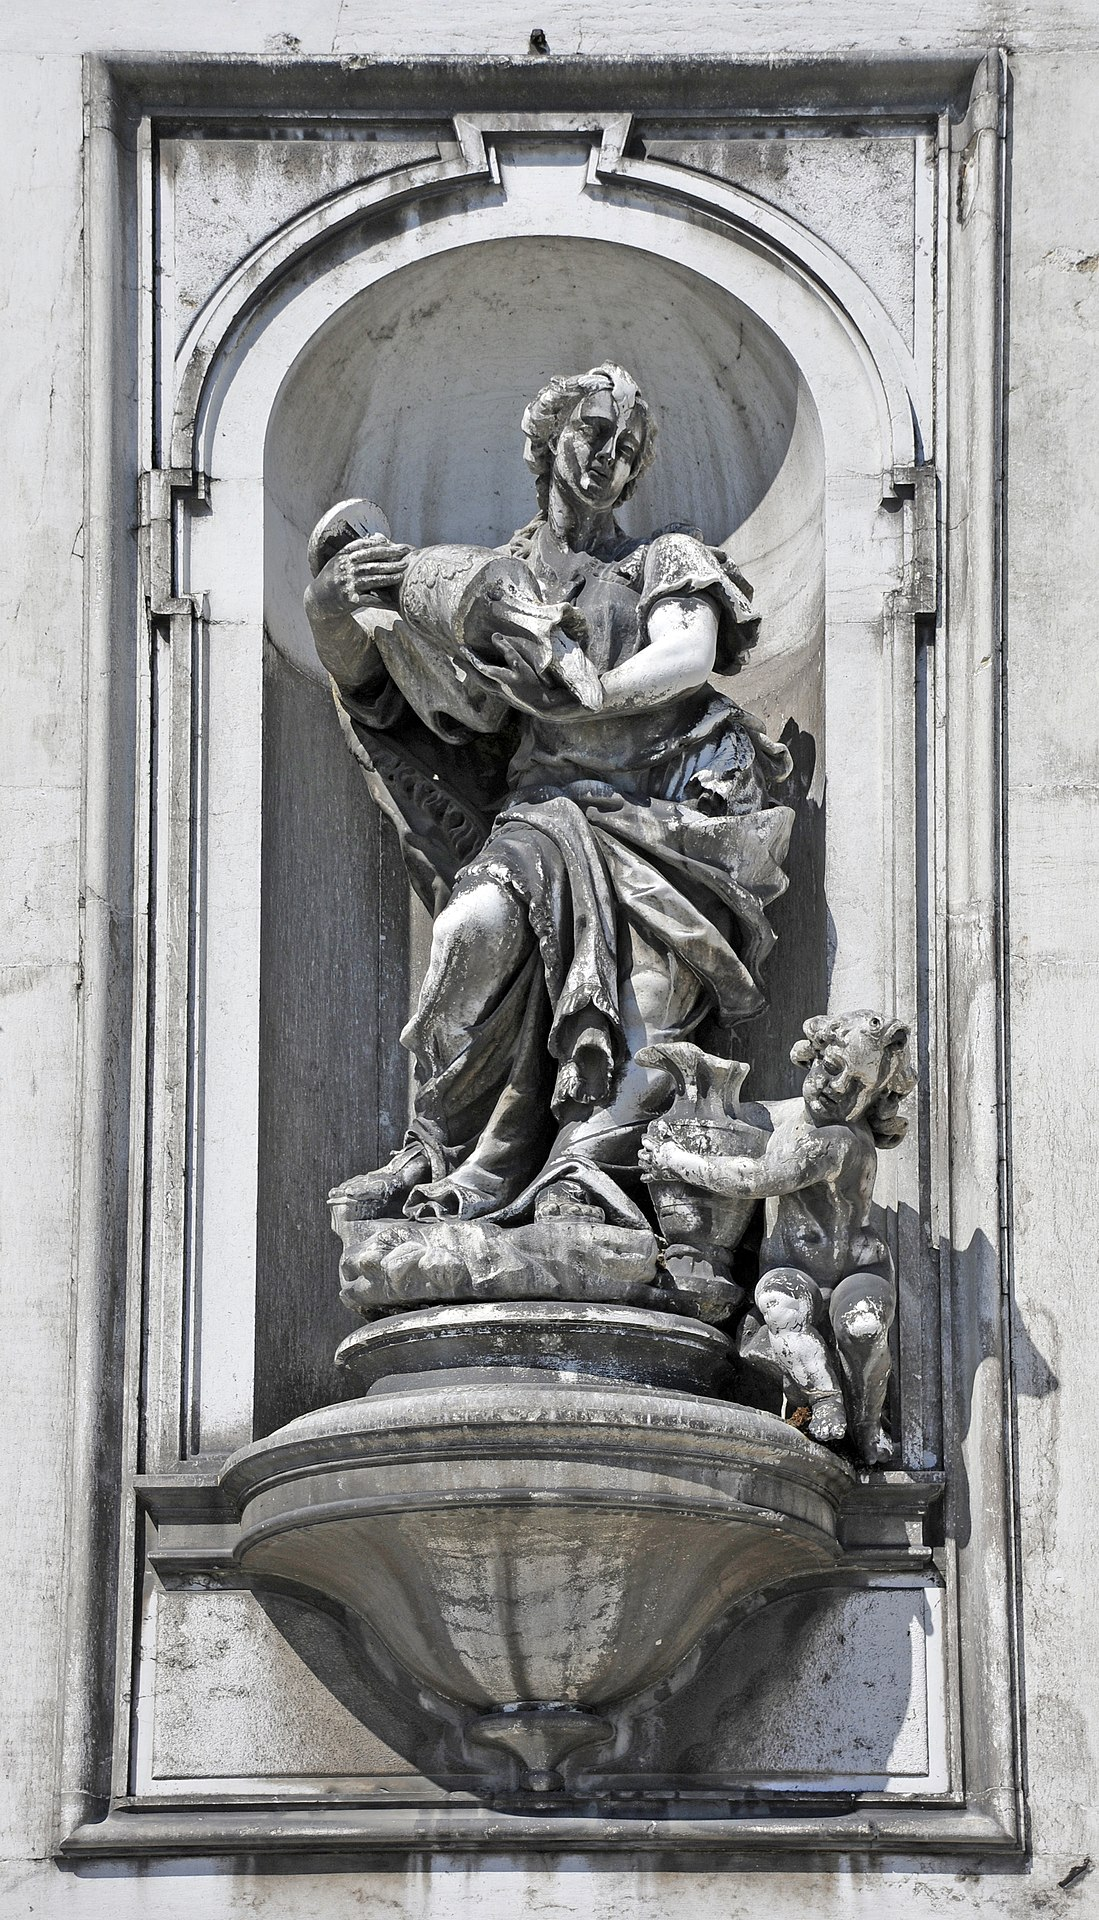 Temperance by Giuseppe Torreto, photo by Wolfgang Moroder (from Wikipedia)